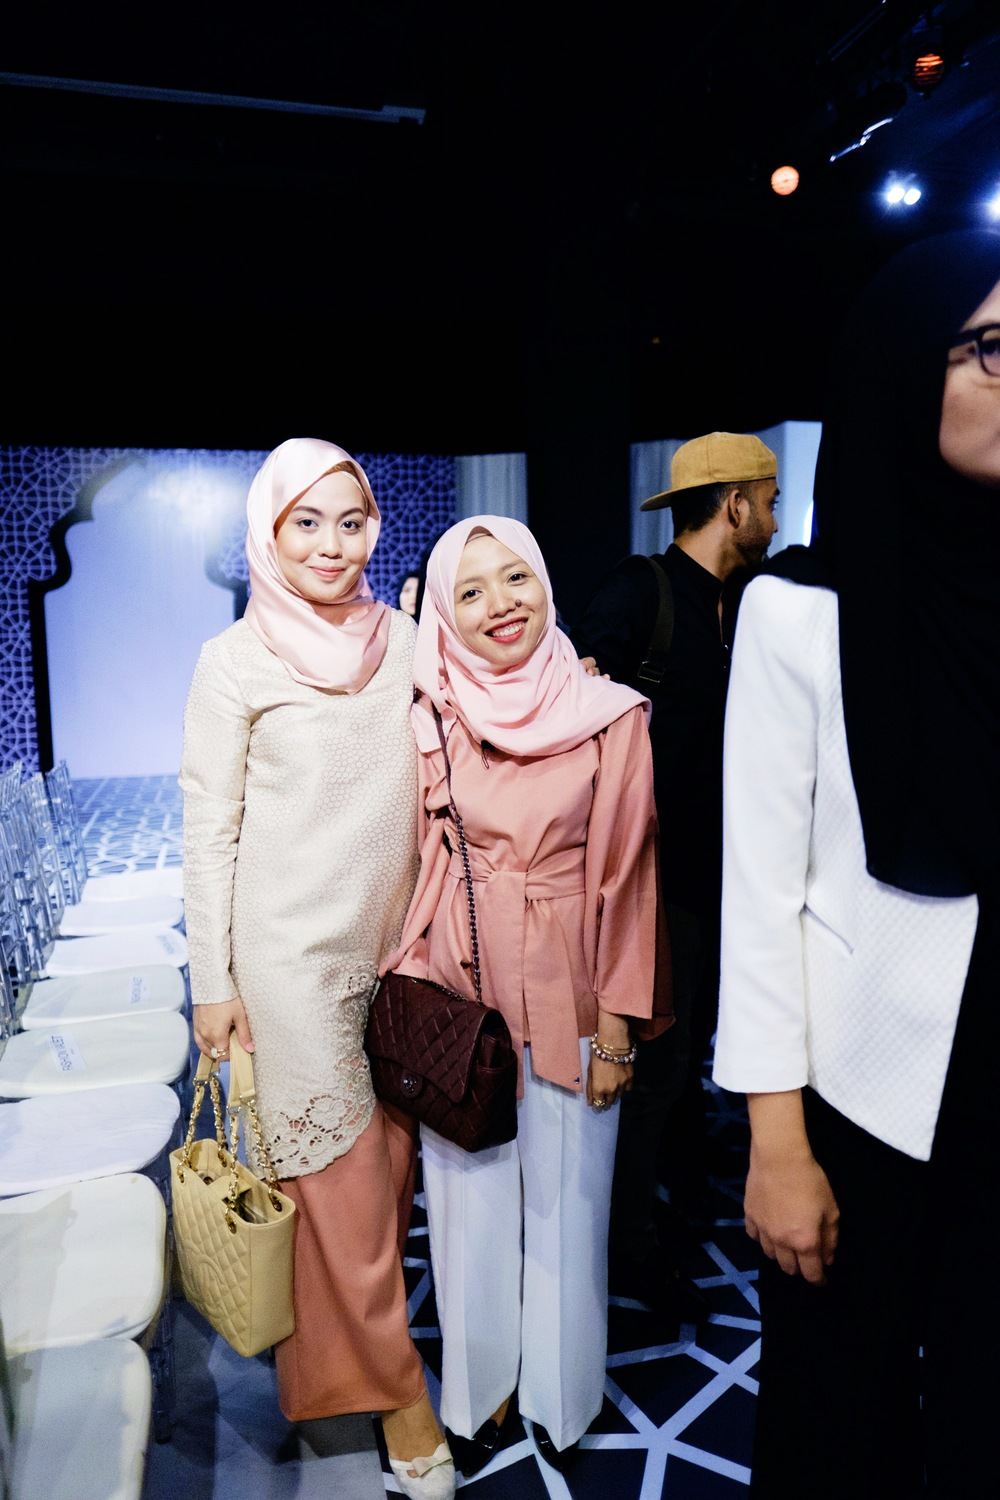 With my new friend, Dalillah Ismail, a fashion influencer from Singapore.